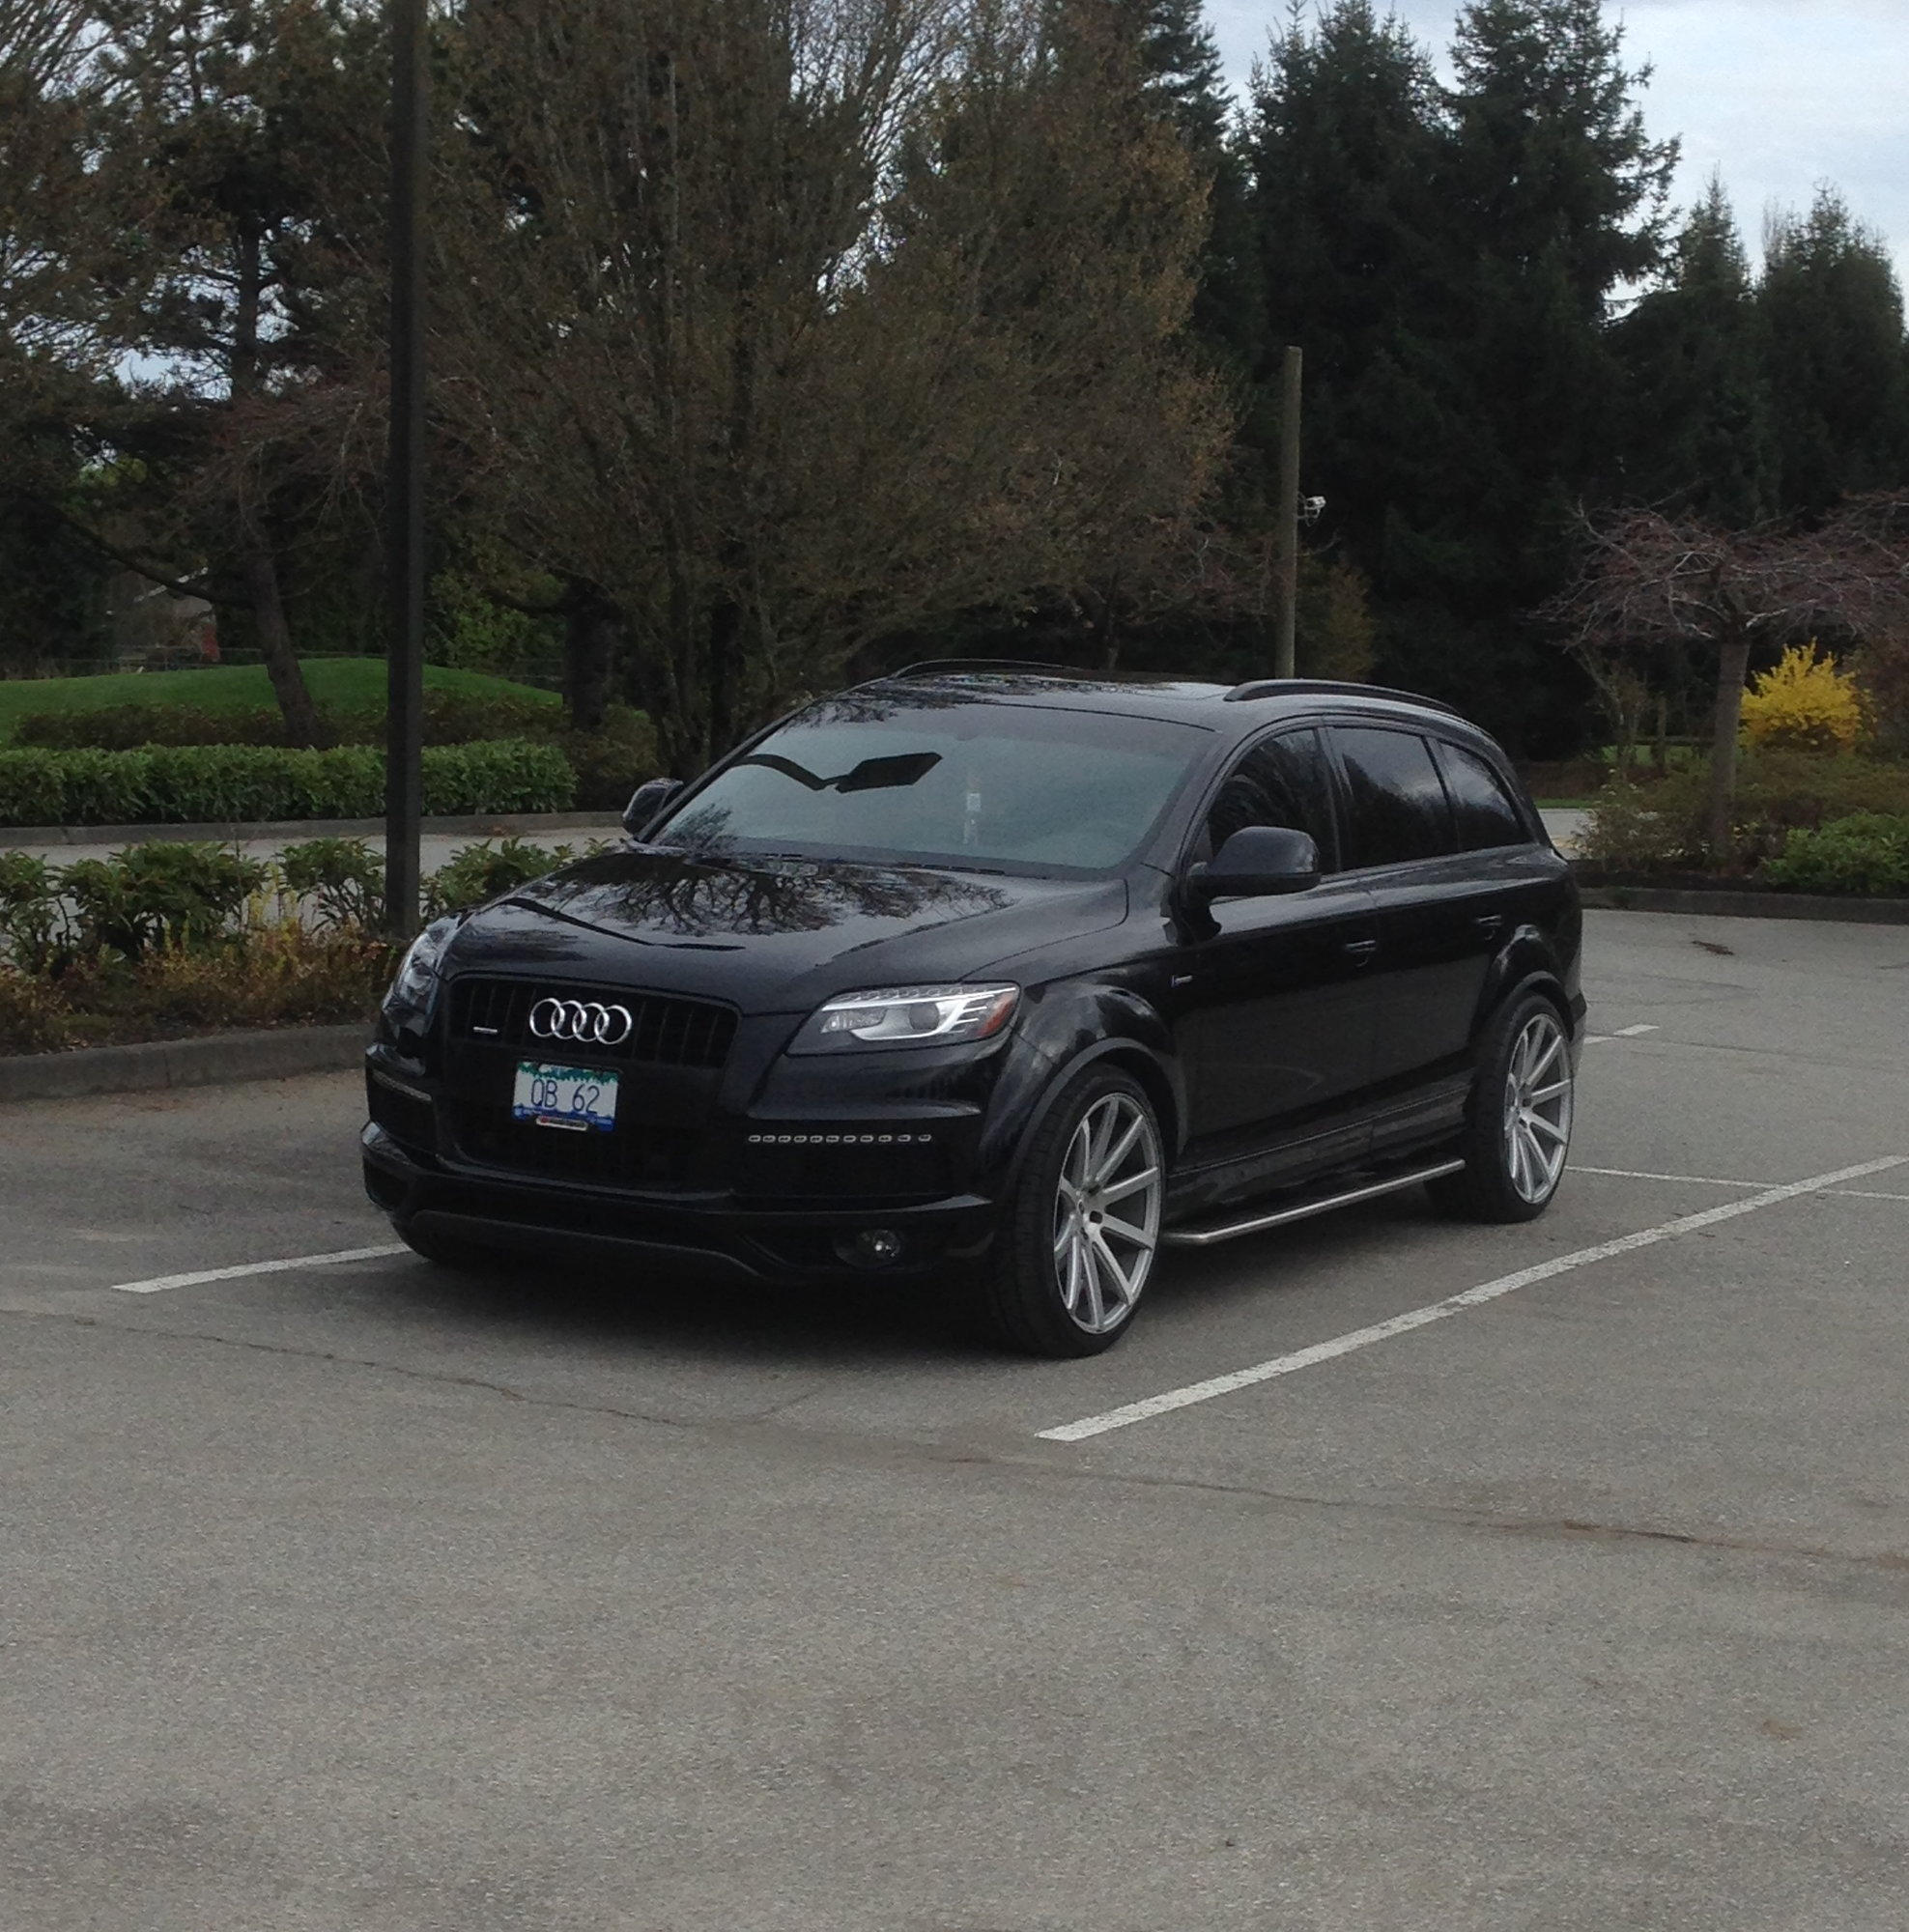 07 Audi Q7 S-Line Looking for 22